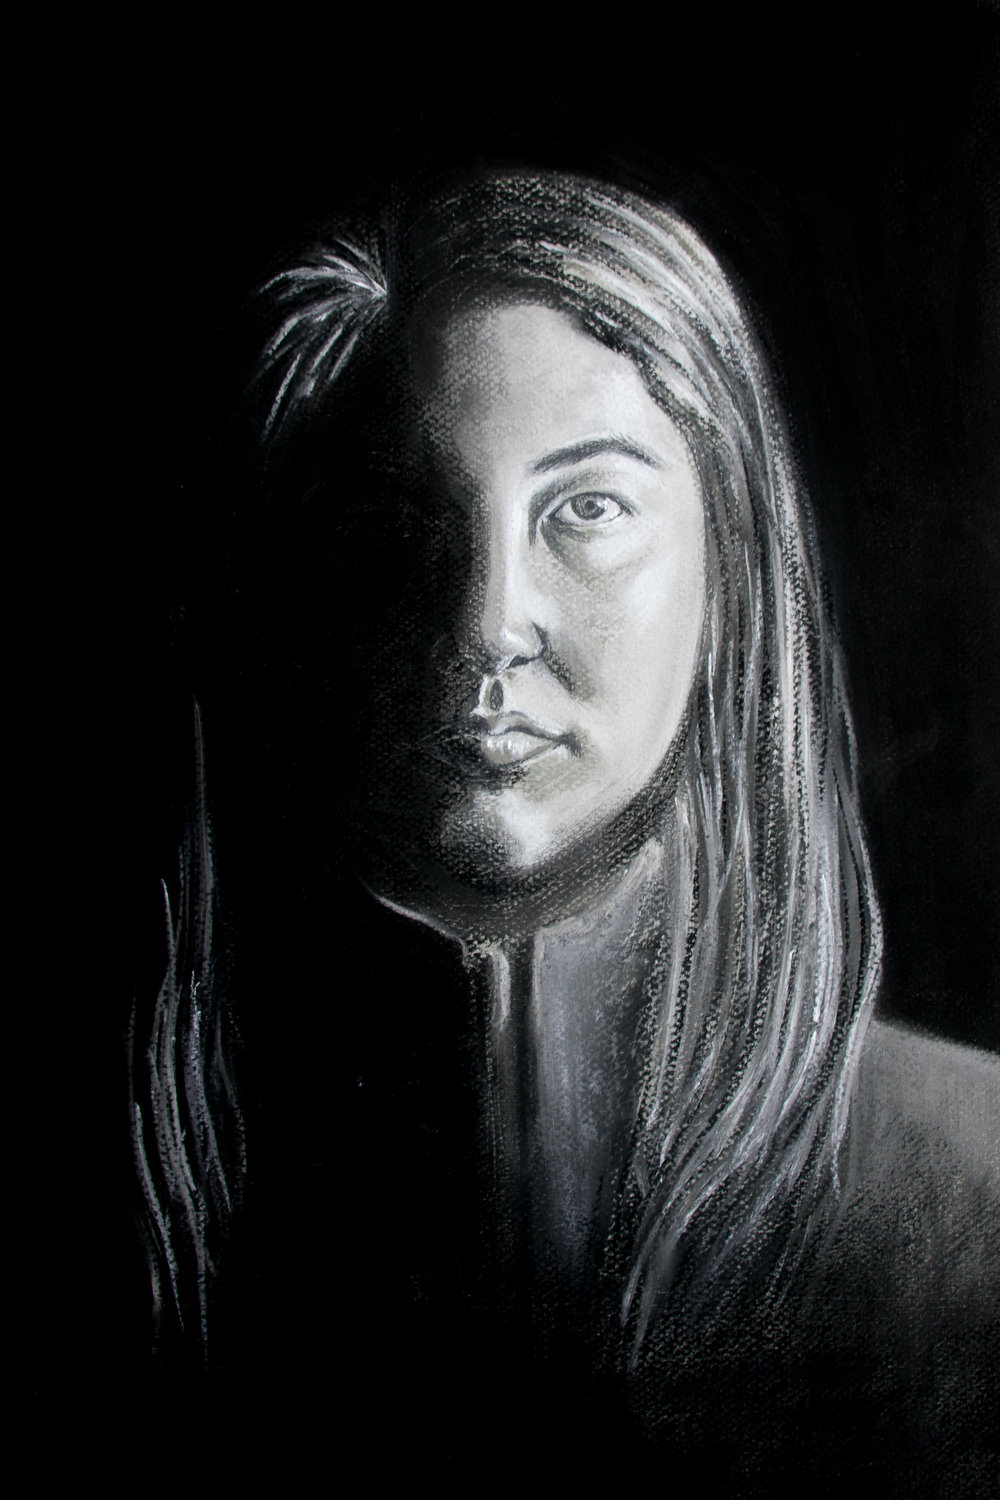 Black and White Charcoal Self-Portrait, Annika McFarlane (IDEA22)   This was an assignment for our life drawing class where we had to do a self-portrait without using photo reference, meaning we could only use a mirror. I chose to use hard light to emphasize the shadows, giving the left side of my face a lost edge.